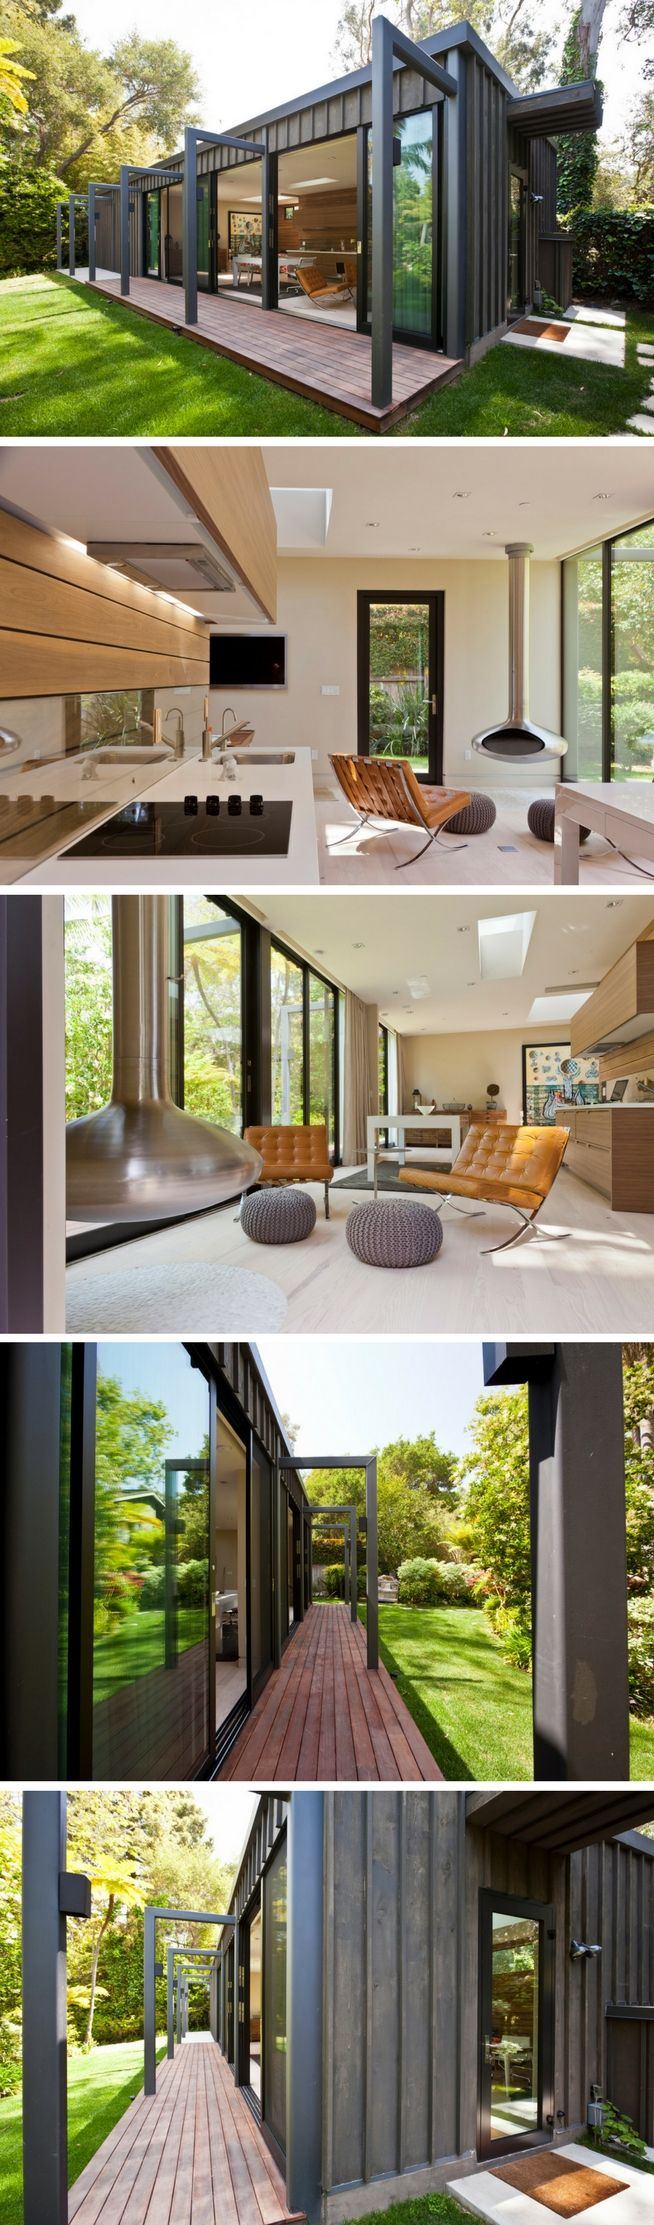 hightree shipping container house luxury shipping container now this shipping container house is stunning over the years architectural firm jendretzki has been involved in various projects in the us and around